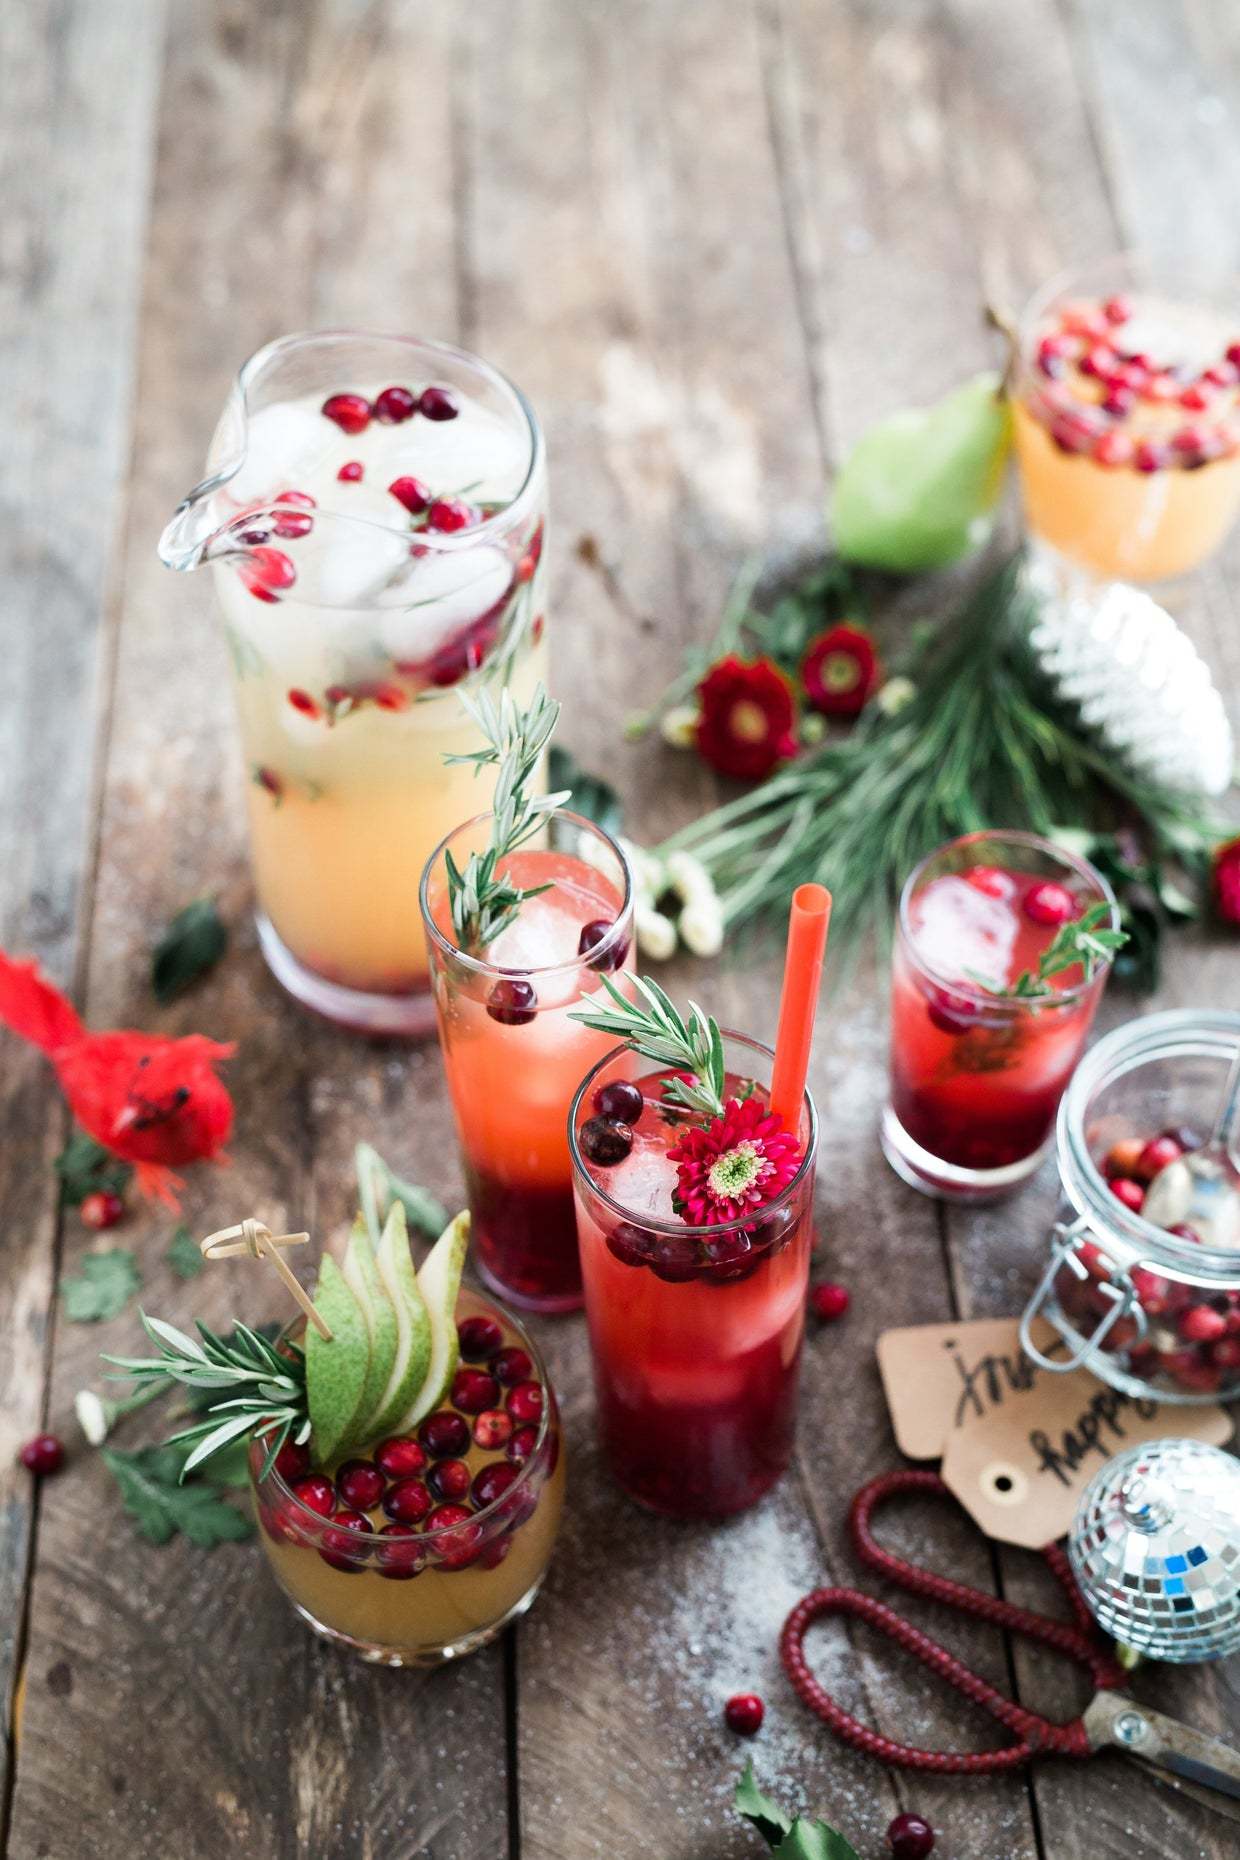 Make it: Holiday Spirits